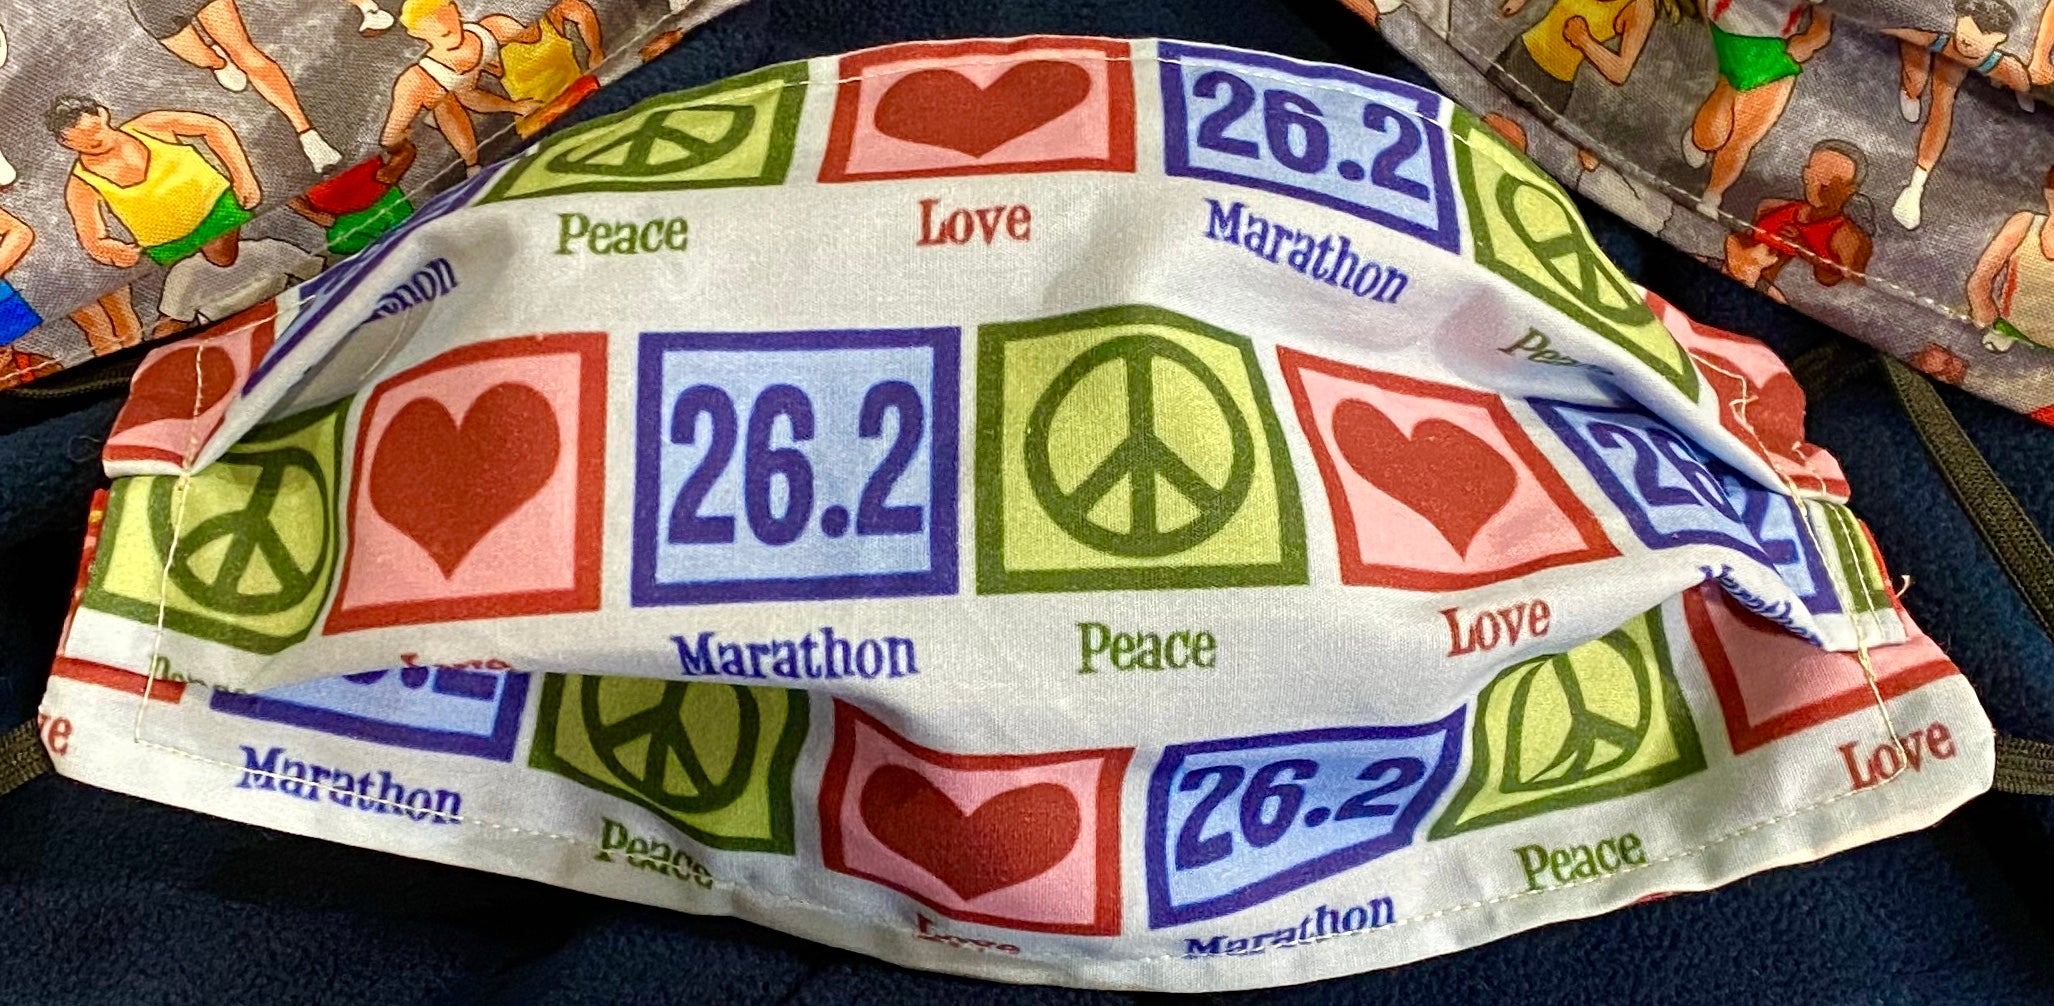 Marathon 26.2 Peace Love Mask. Check Options Below!